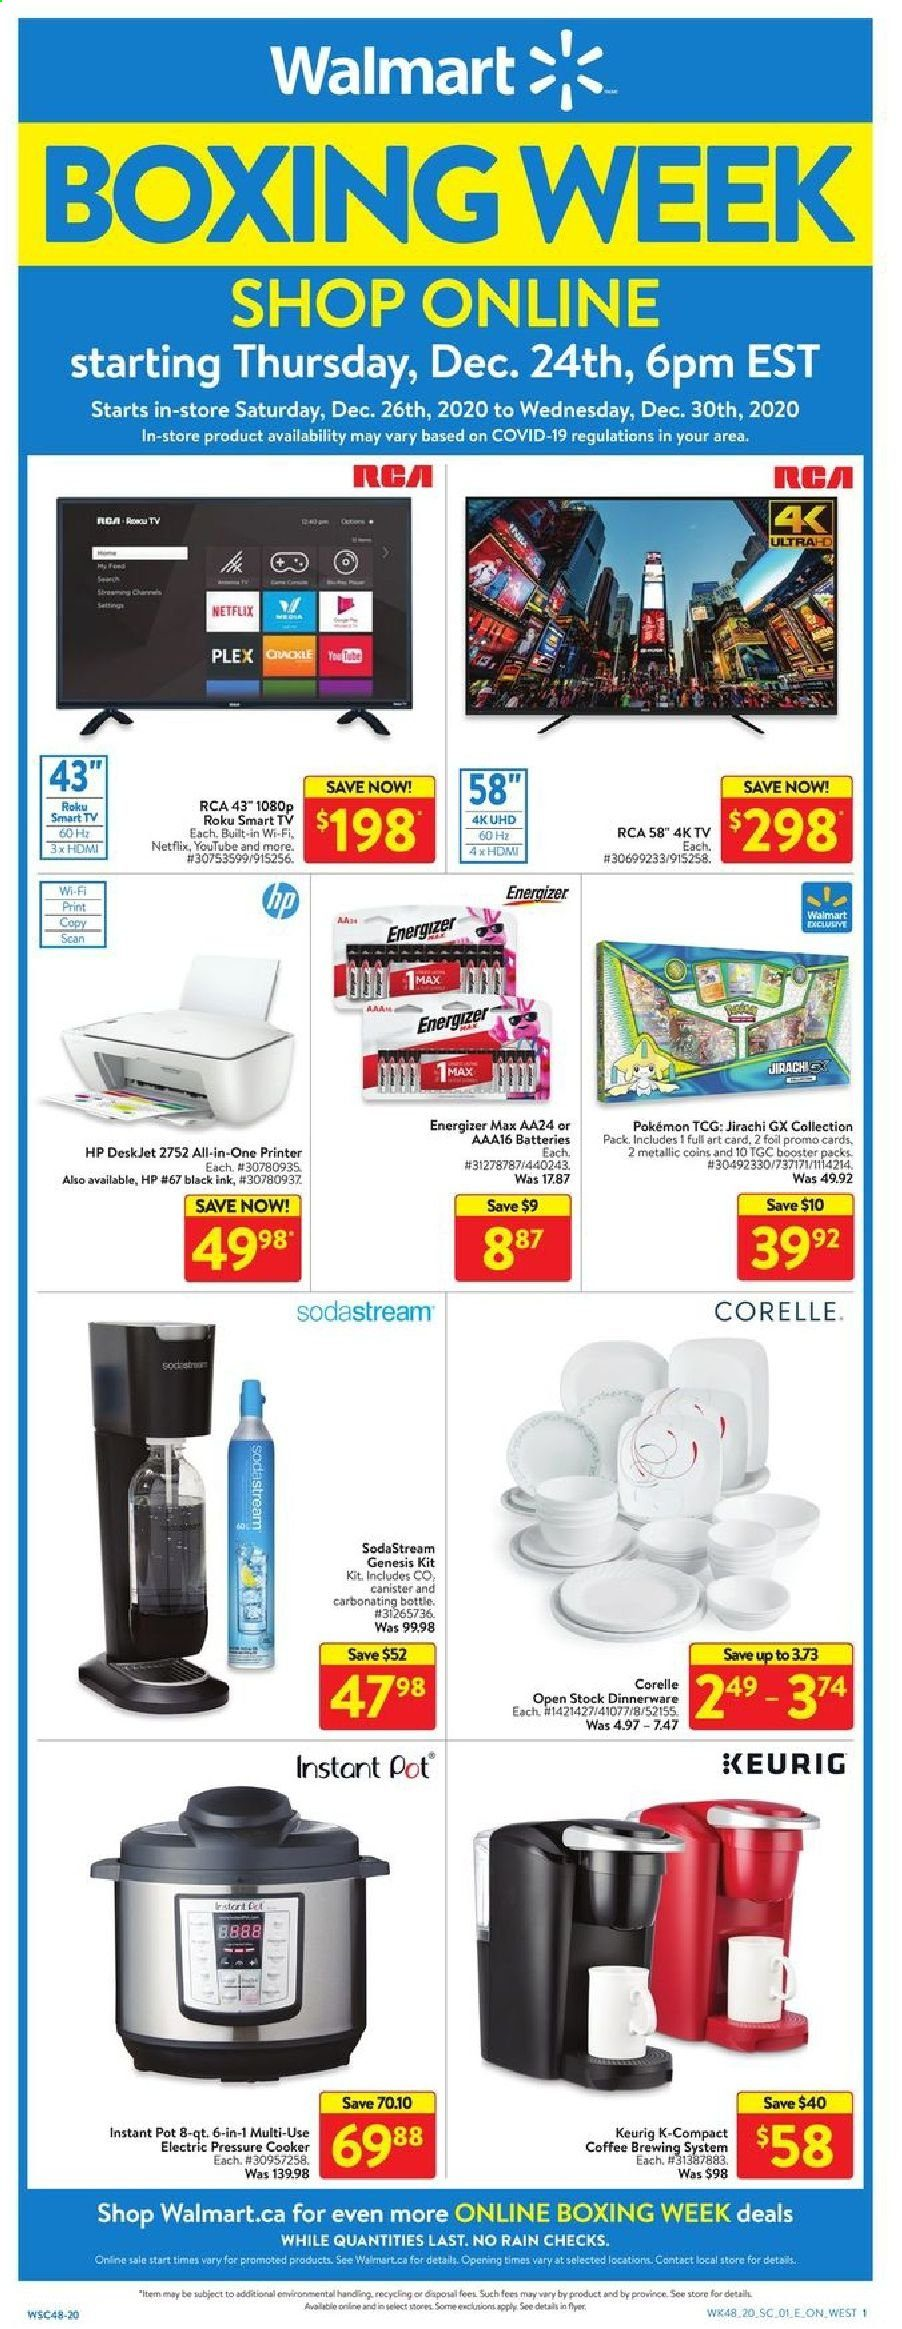 Walmart Flyer - December 26, 2020 - December 30, 2020 - Sales products - all-in-one printer, battery, coffee, Energizer, rca, smart tv, HP, pot, pressure cooker, printer, Instant Pot, canister, all-in-one. Page 1.